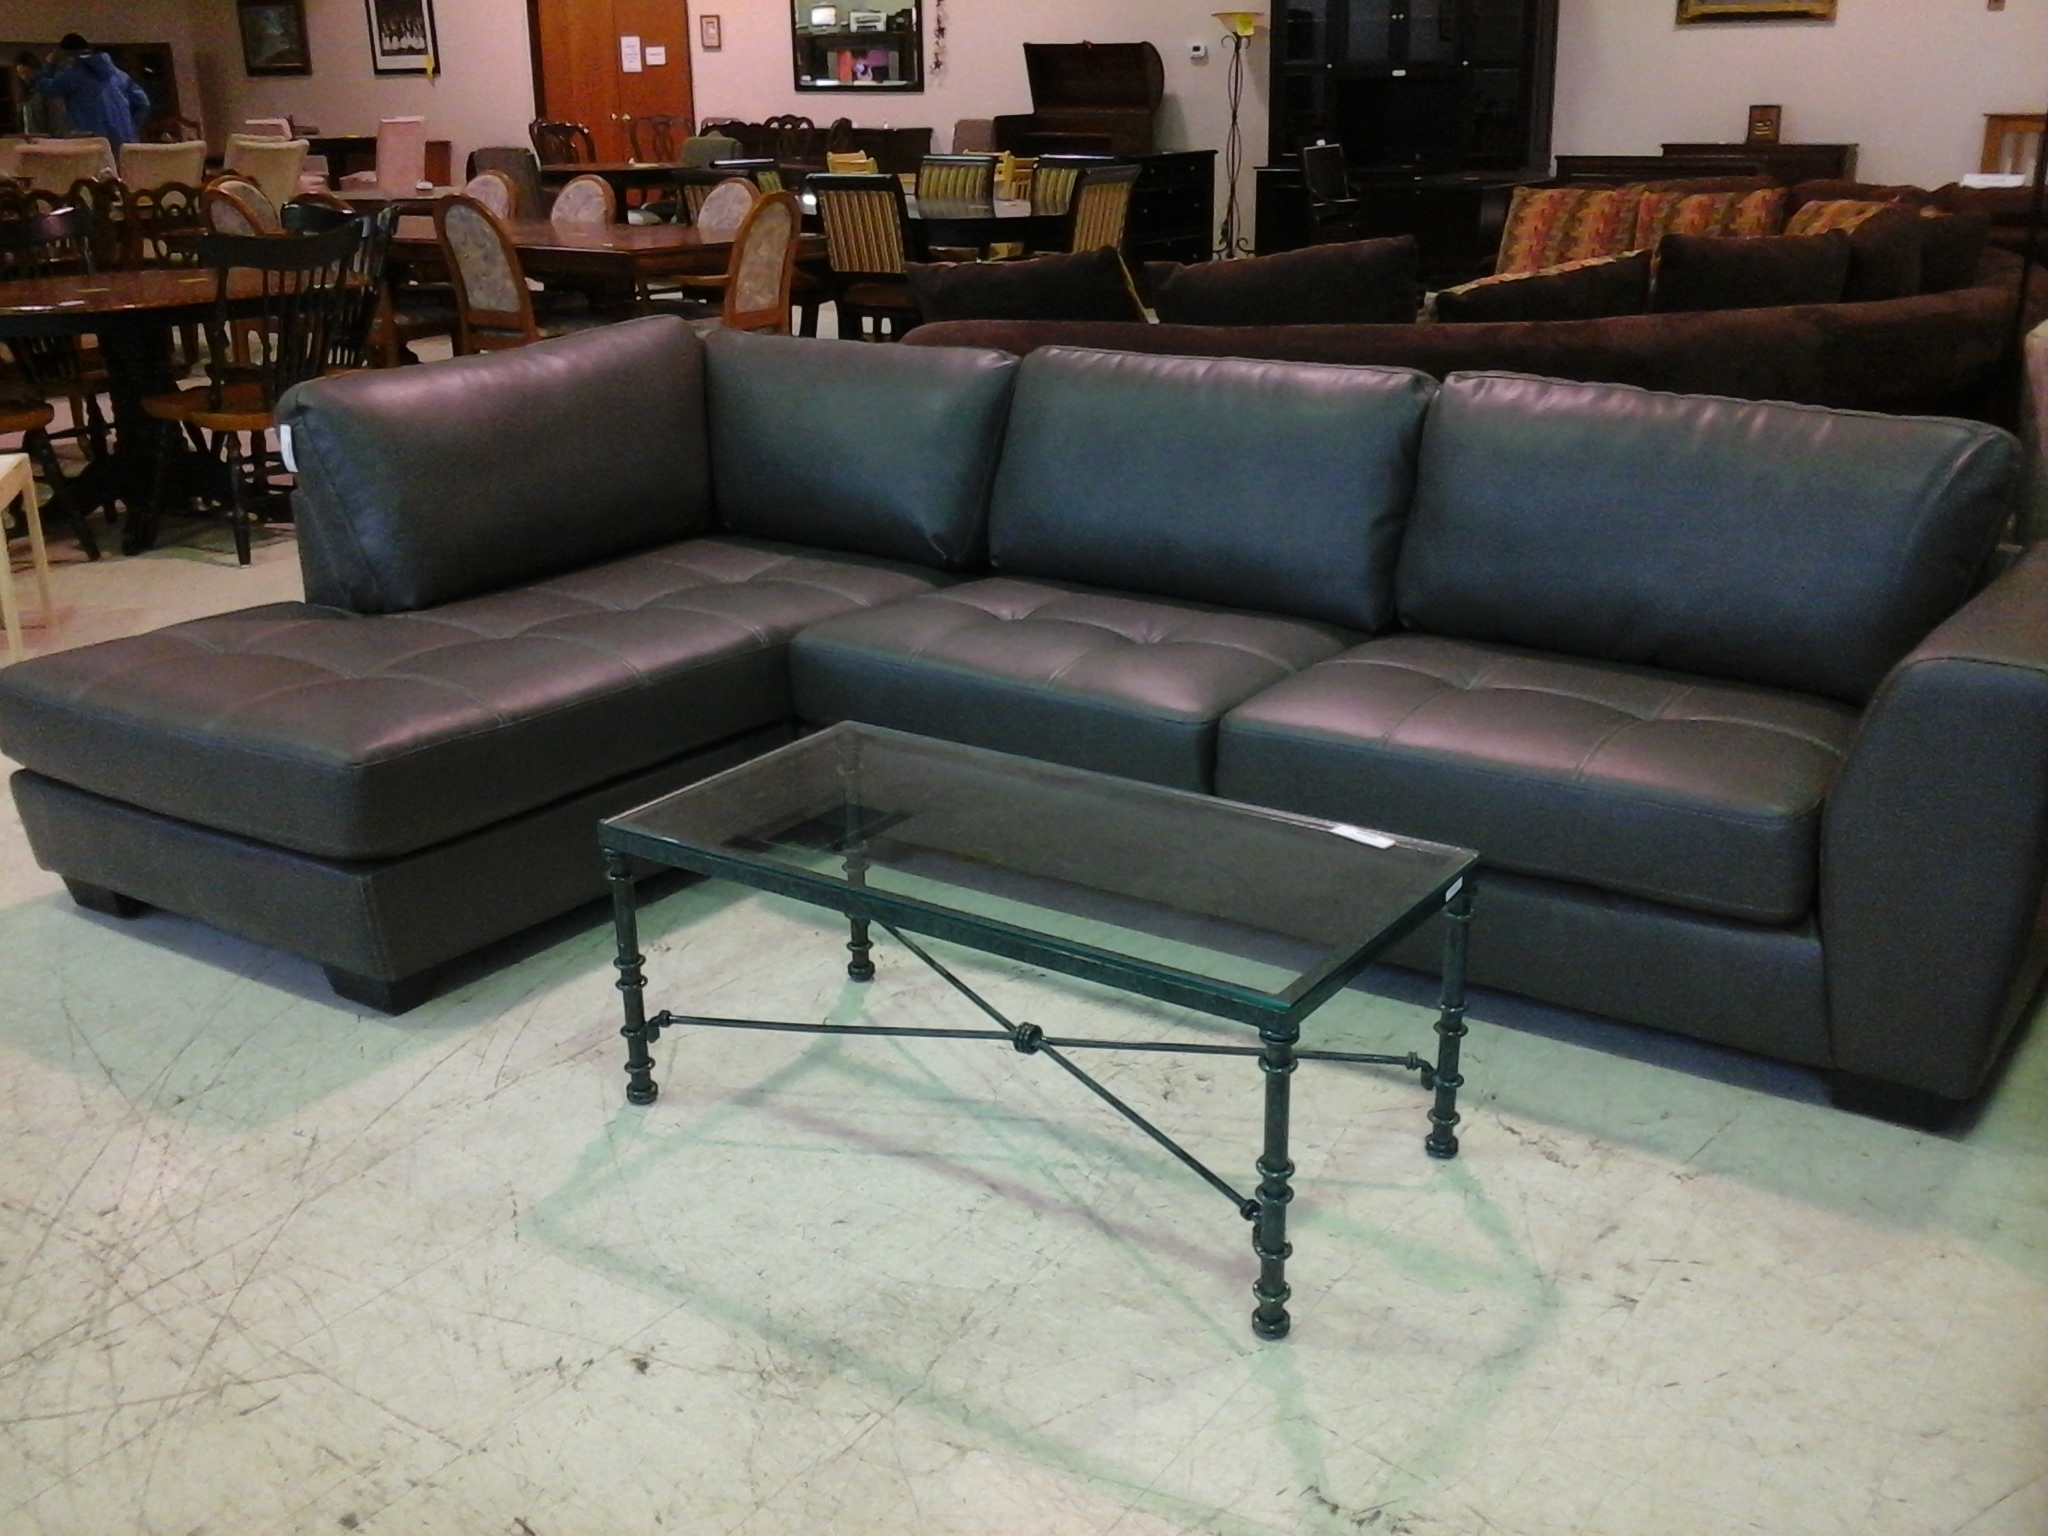 Sectional Sofas San Francisco – Fjellkjeden Pertaining To Most Up To Date San Francisco Sectional Sofas (View 20 of 20)